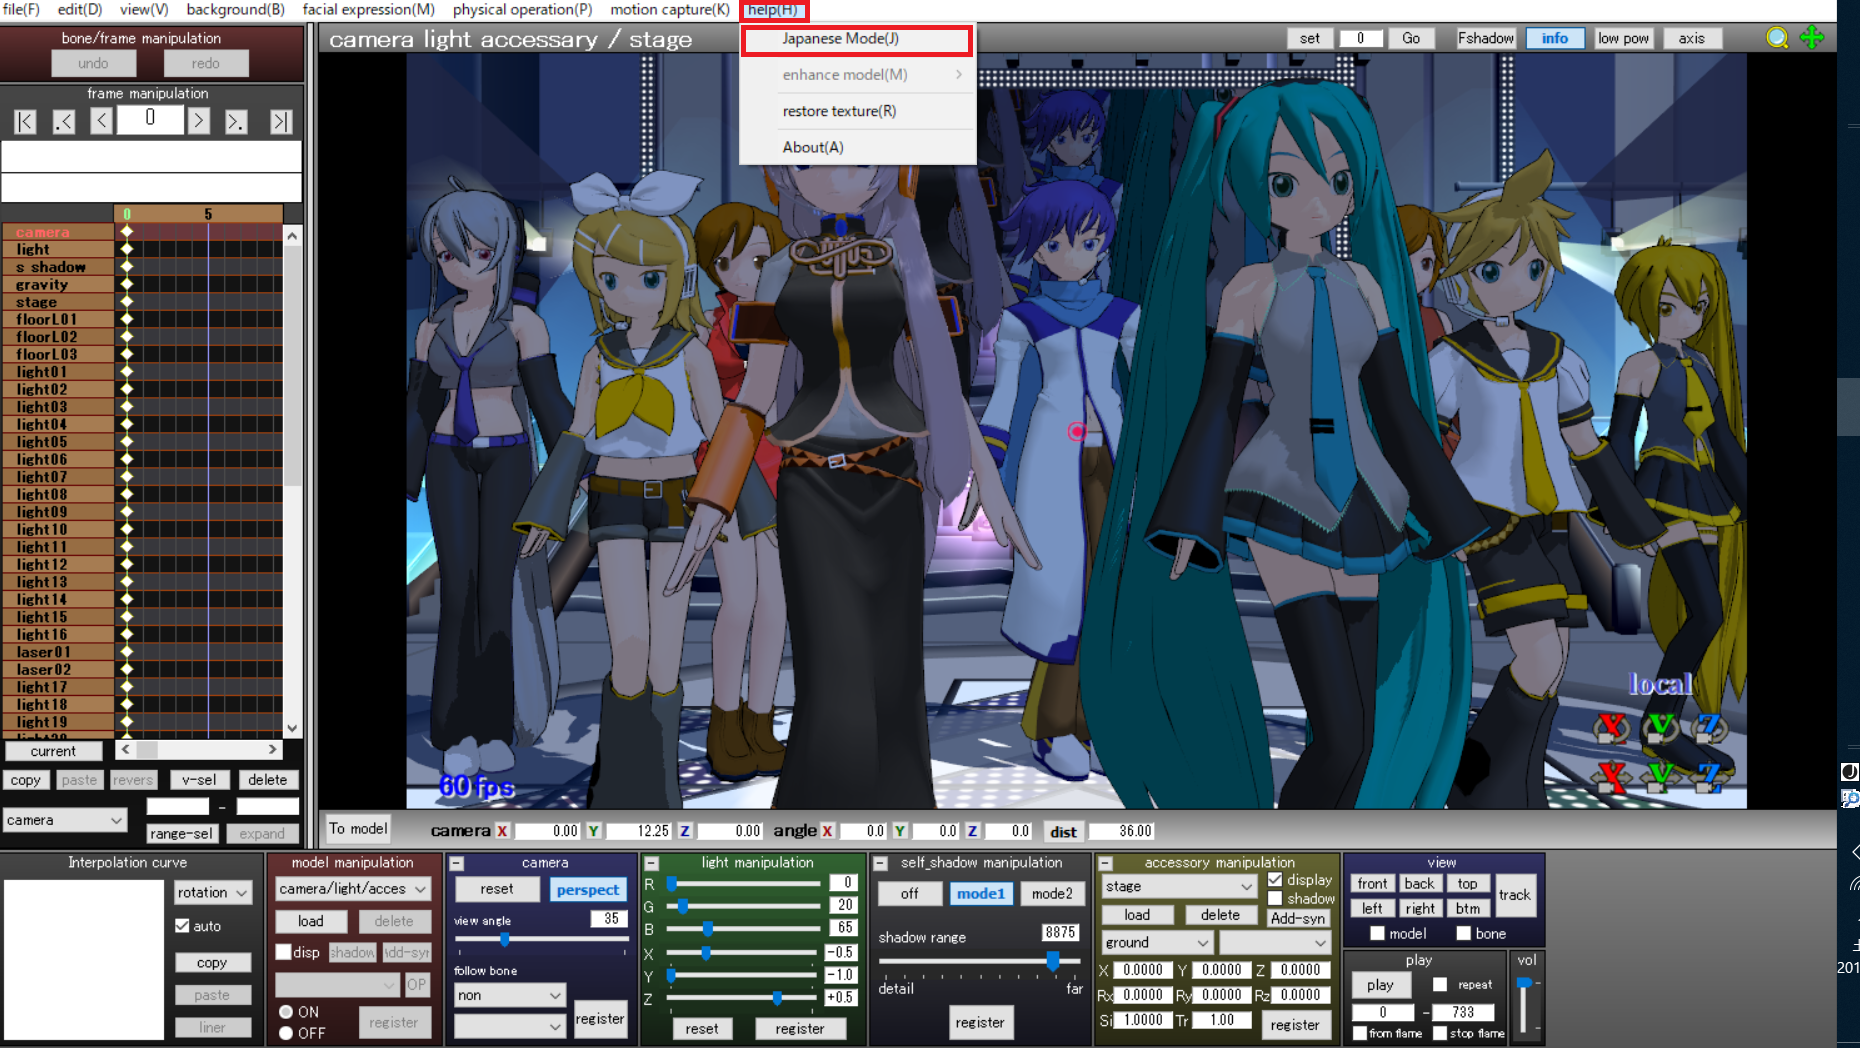 mmd firstmission(2)